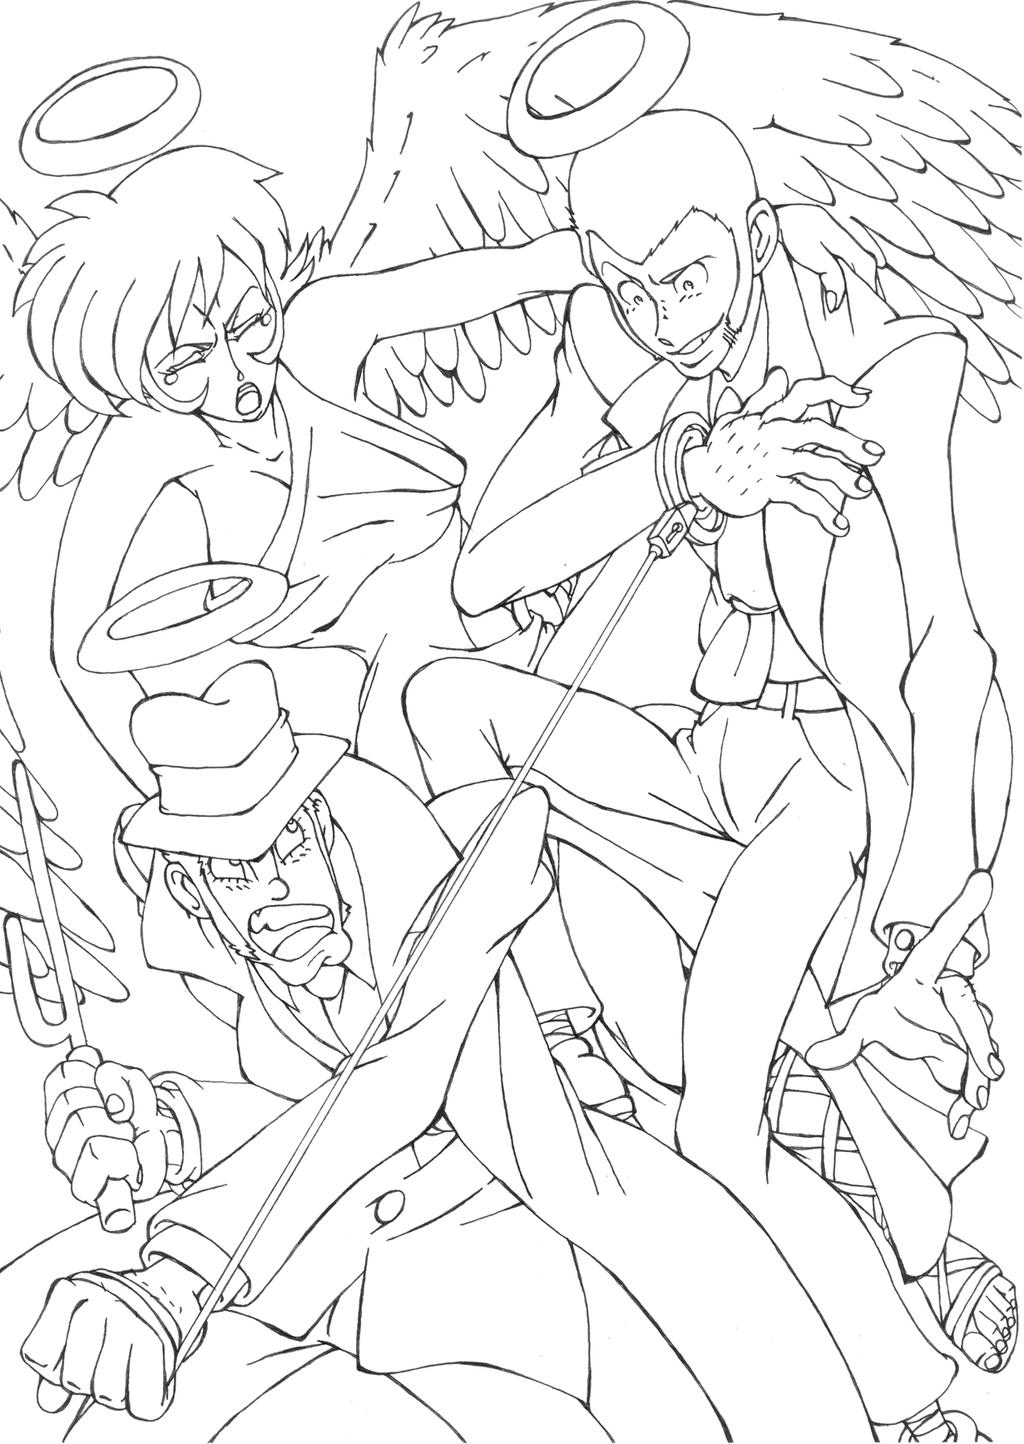 LupinIII Eternal Chase Lineart by shinlyver